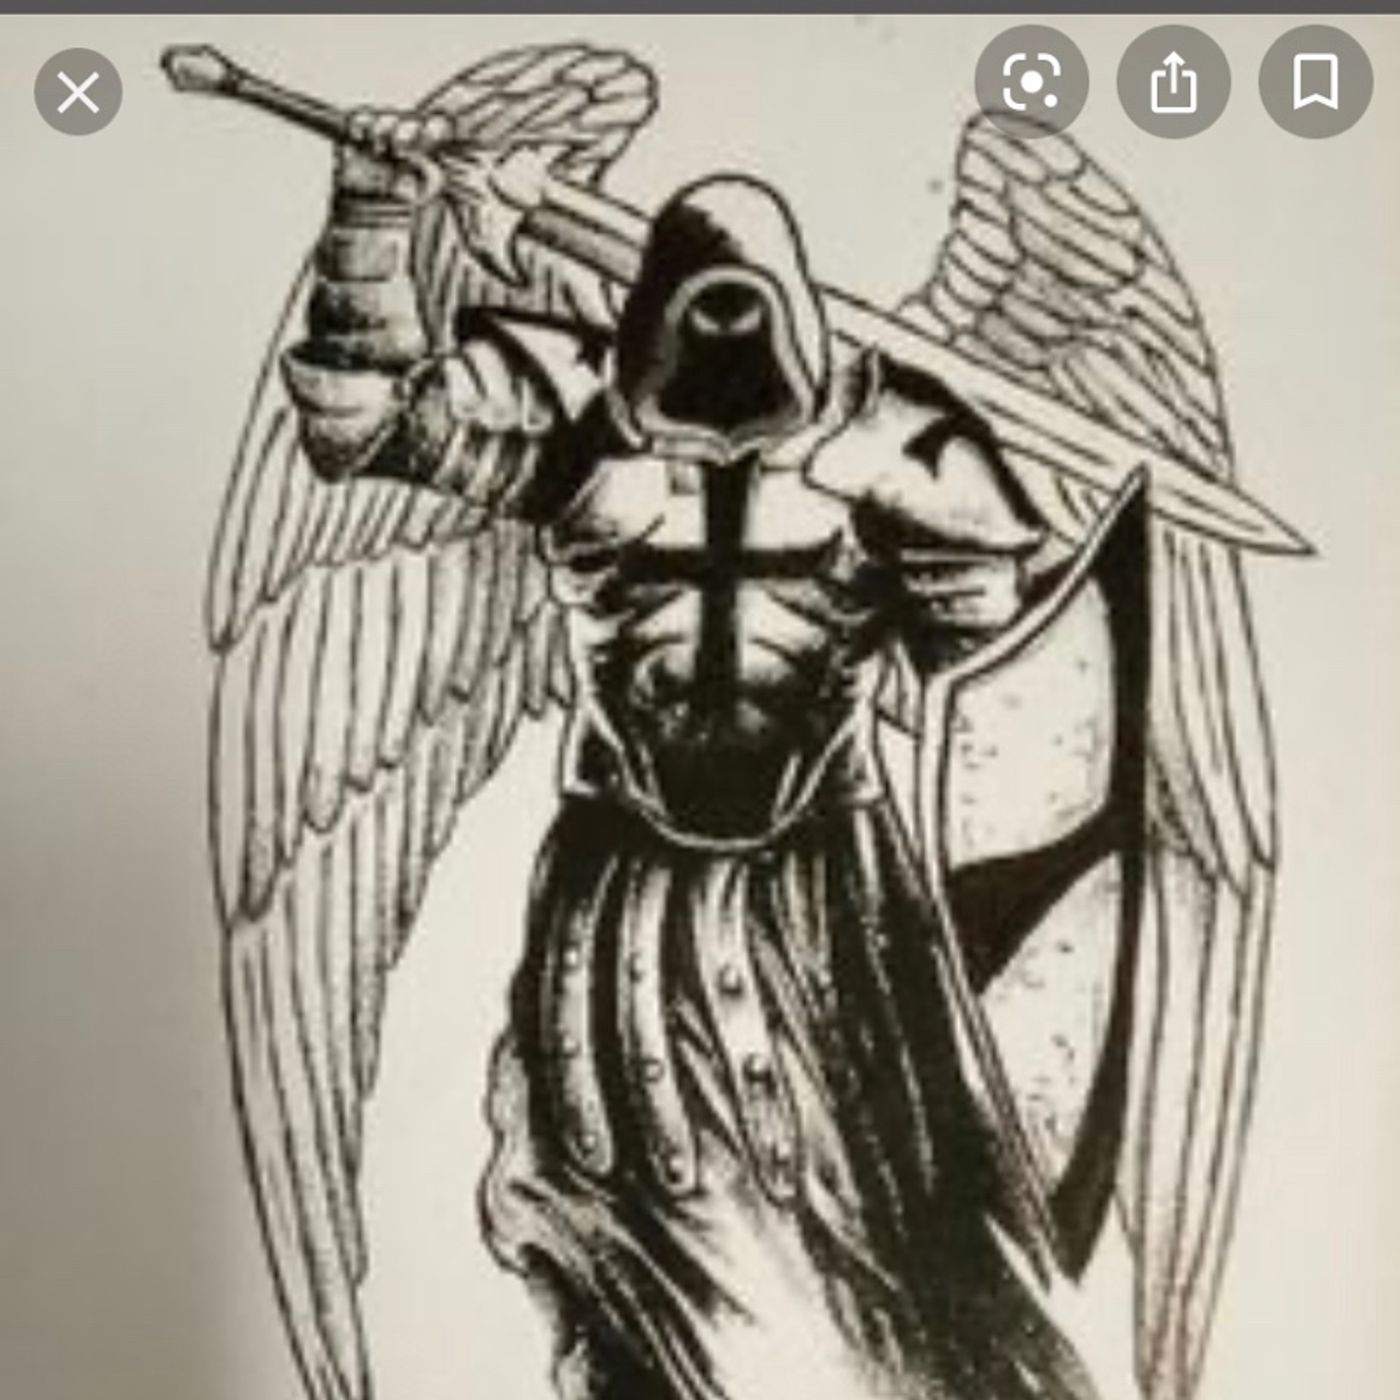 Arch angel Samael, lucifer, the devil and accepting our darkness